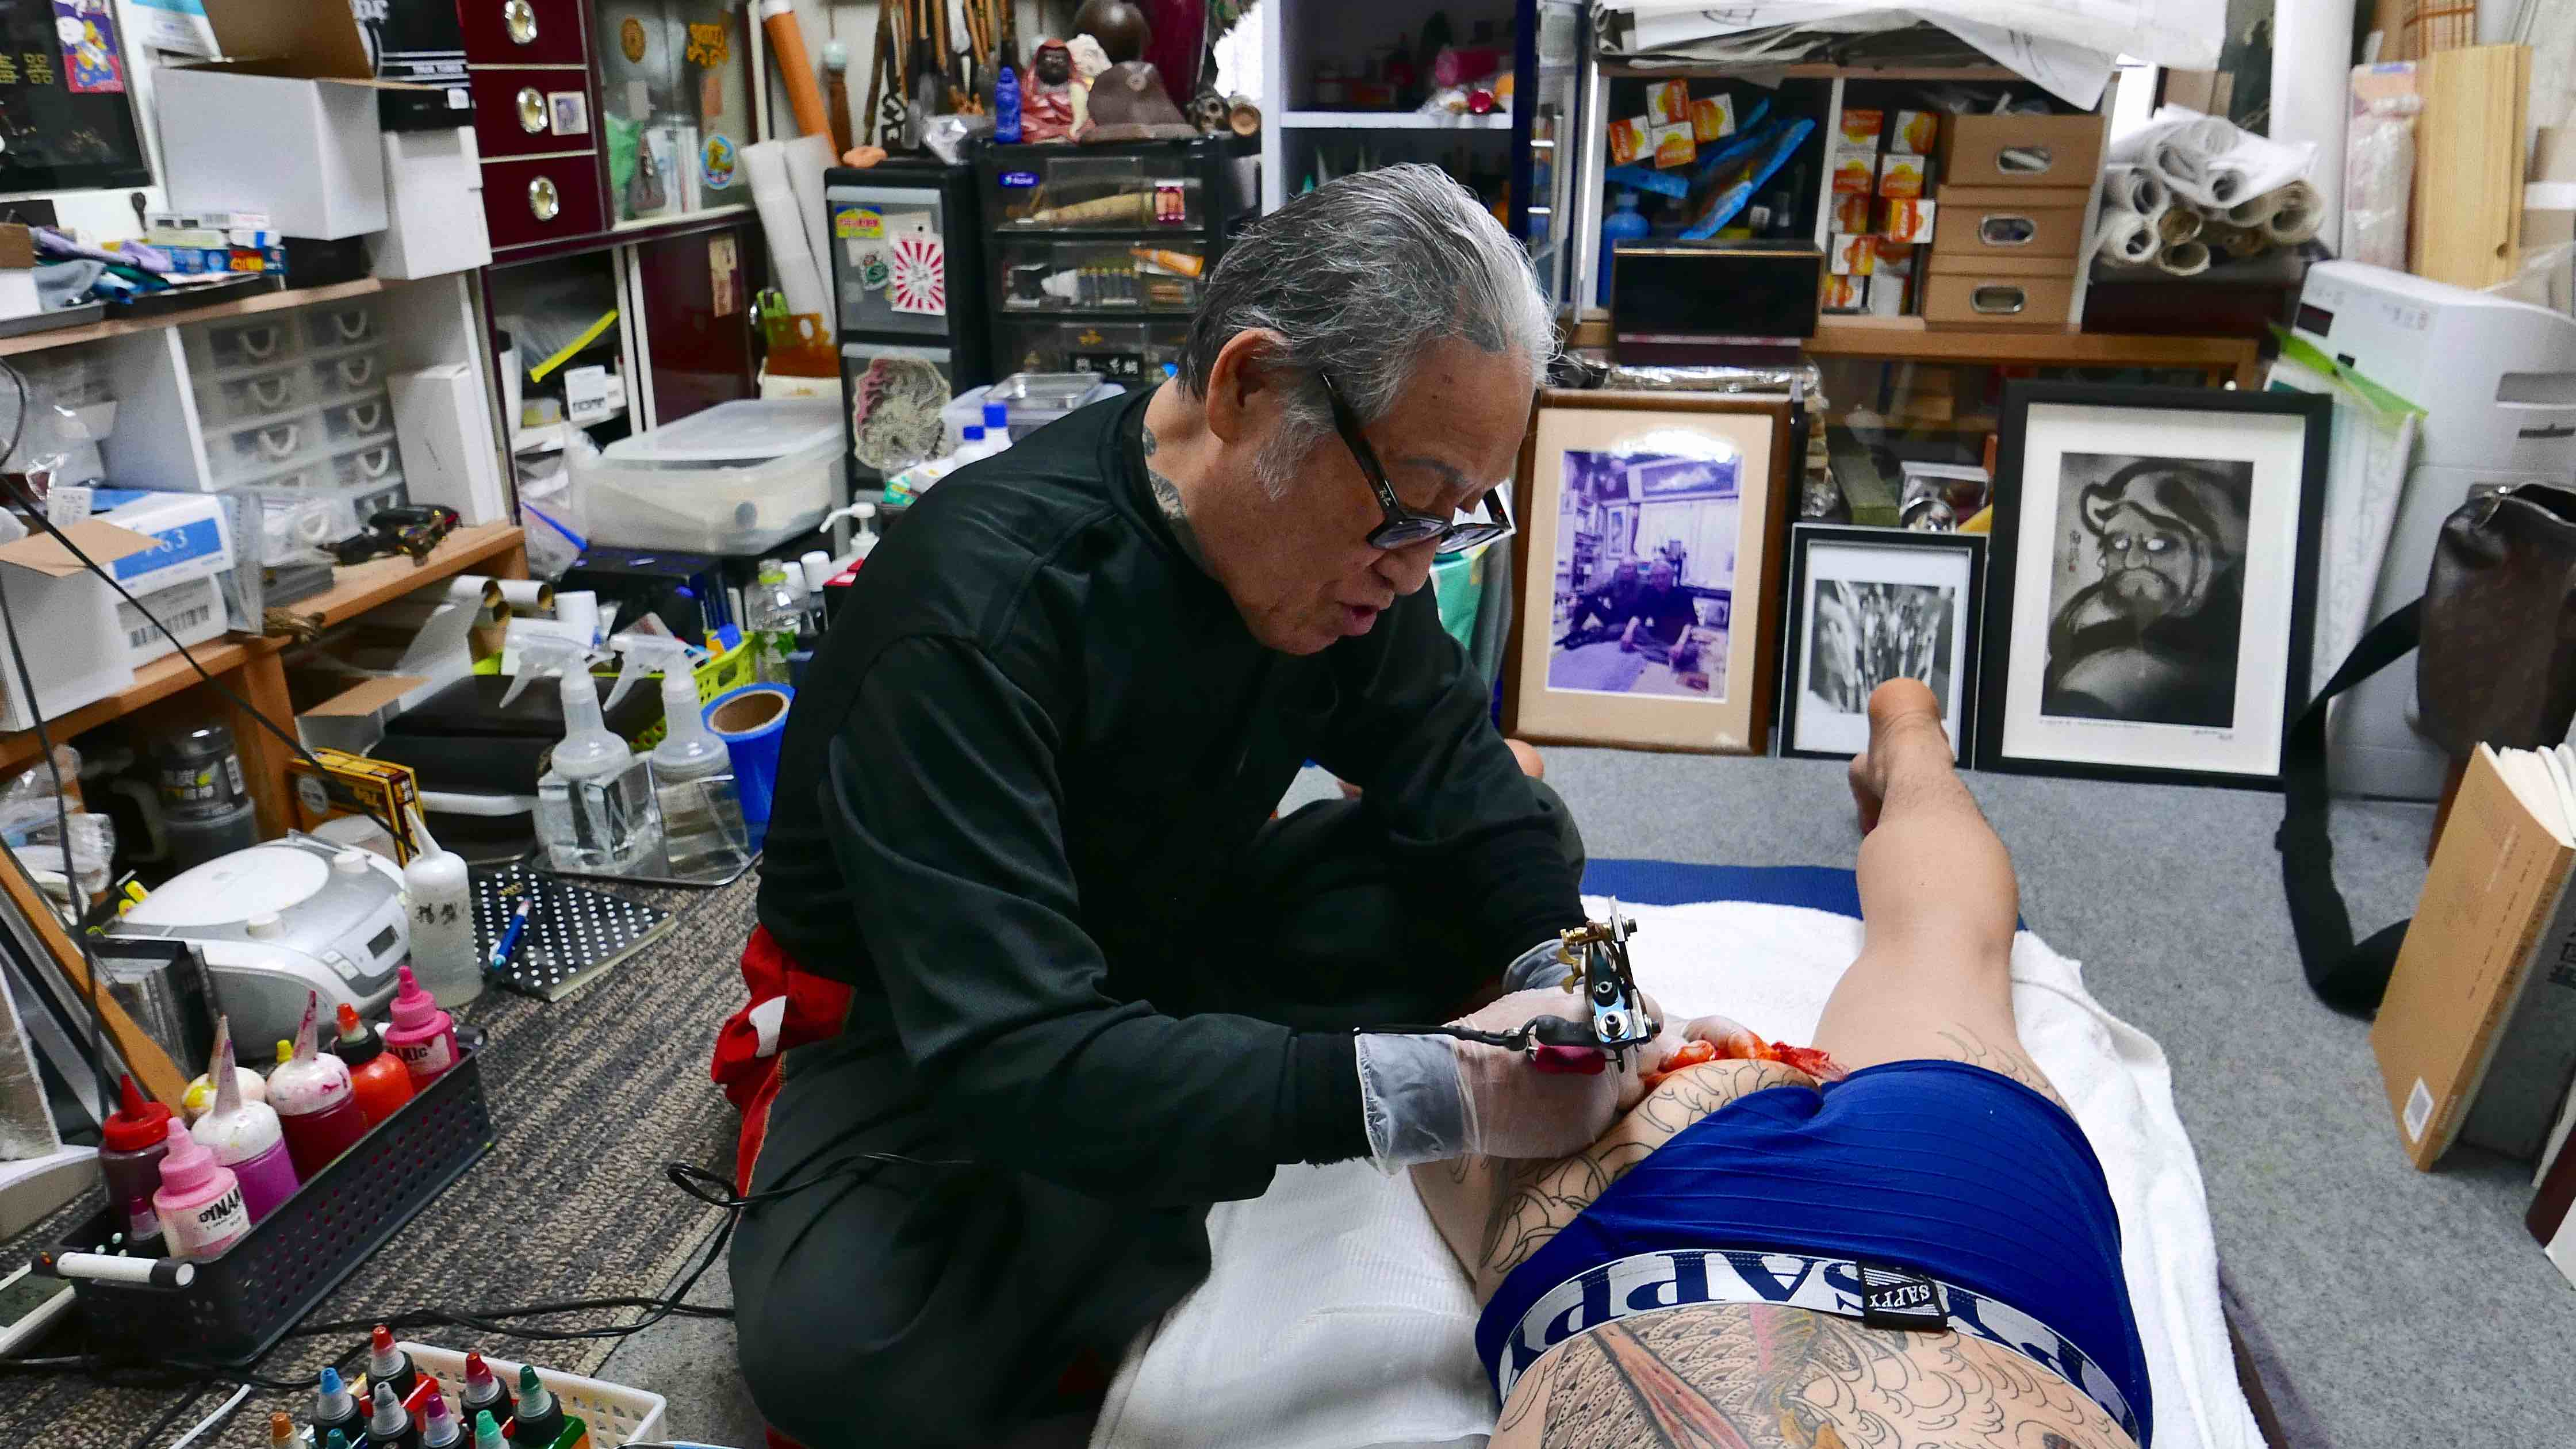 dc2bdd26485ed The Tattooist for the Yakuza Explains Why Tattoos Should Never Be Seen.